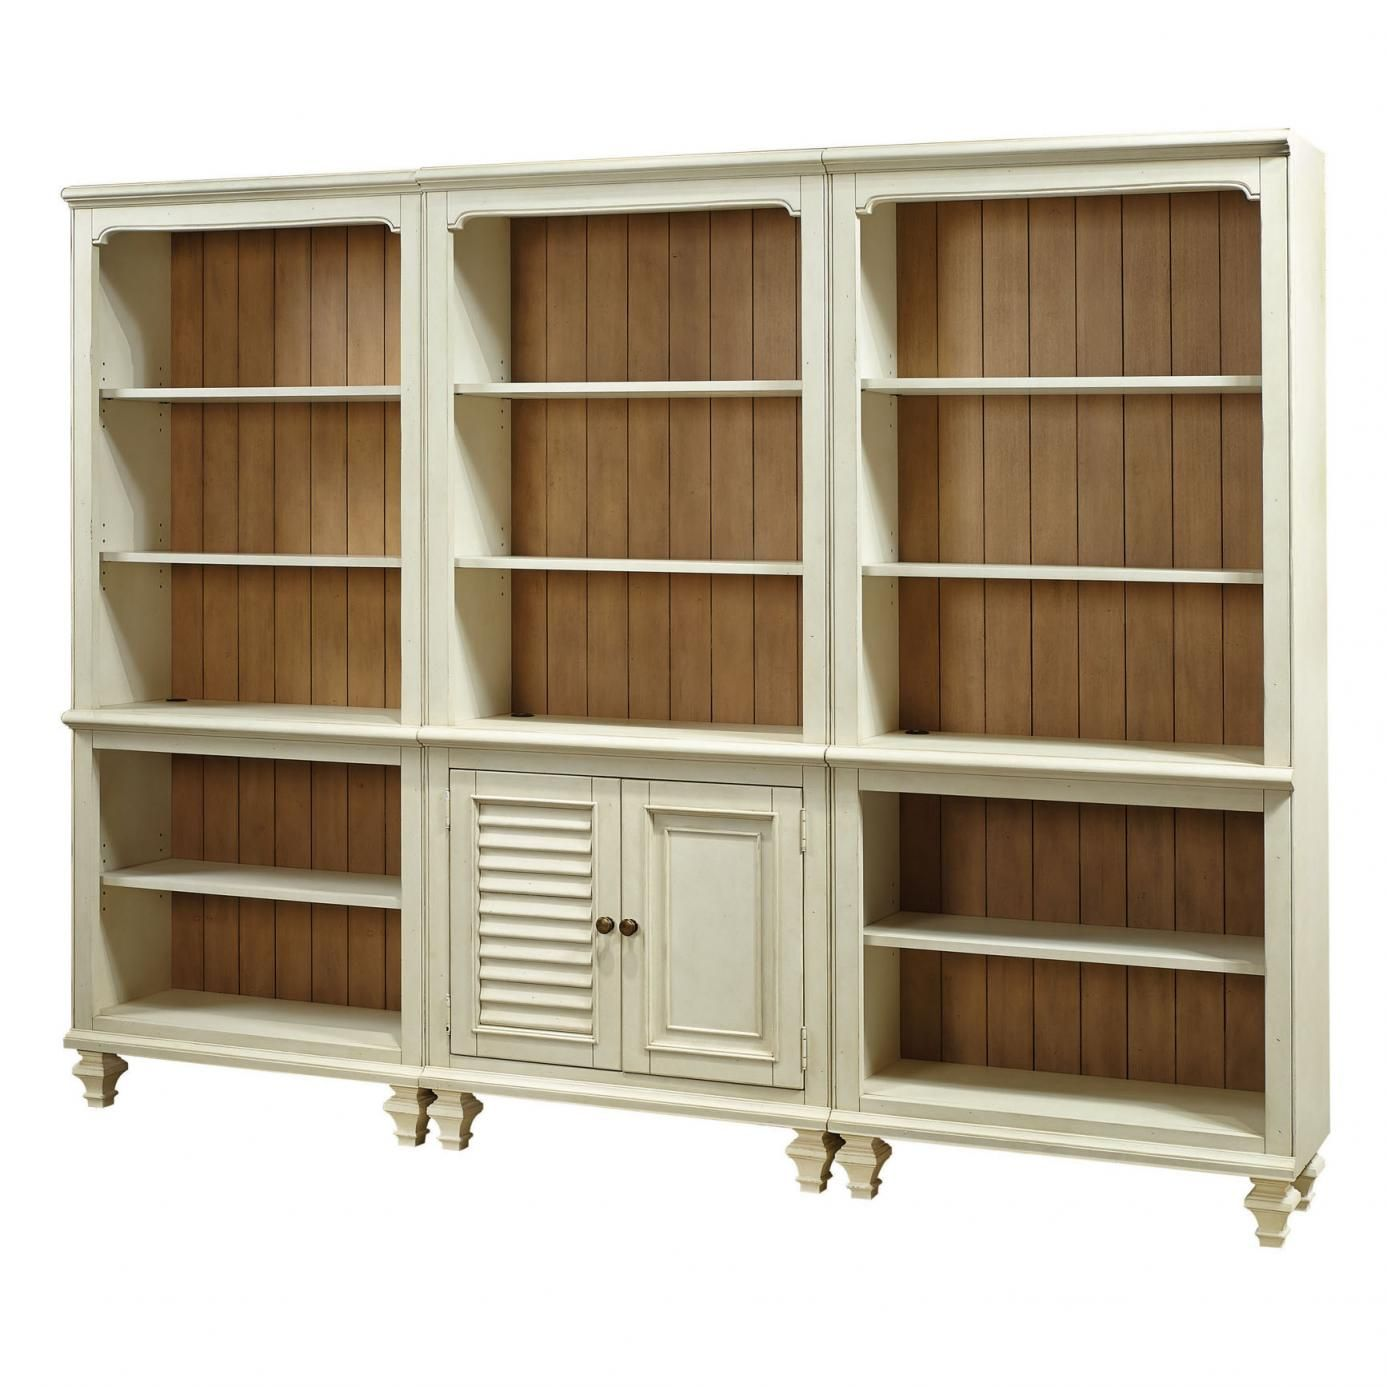 Shop Bookcase With Hutches at Johnny Janosik